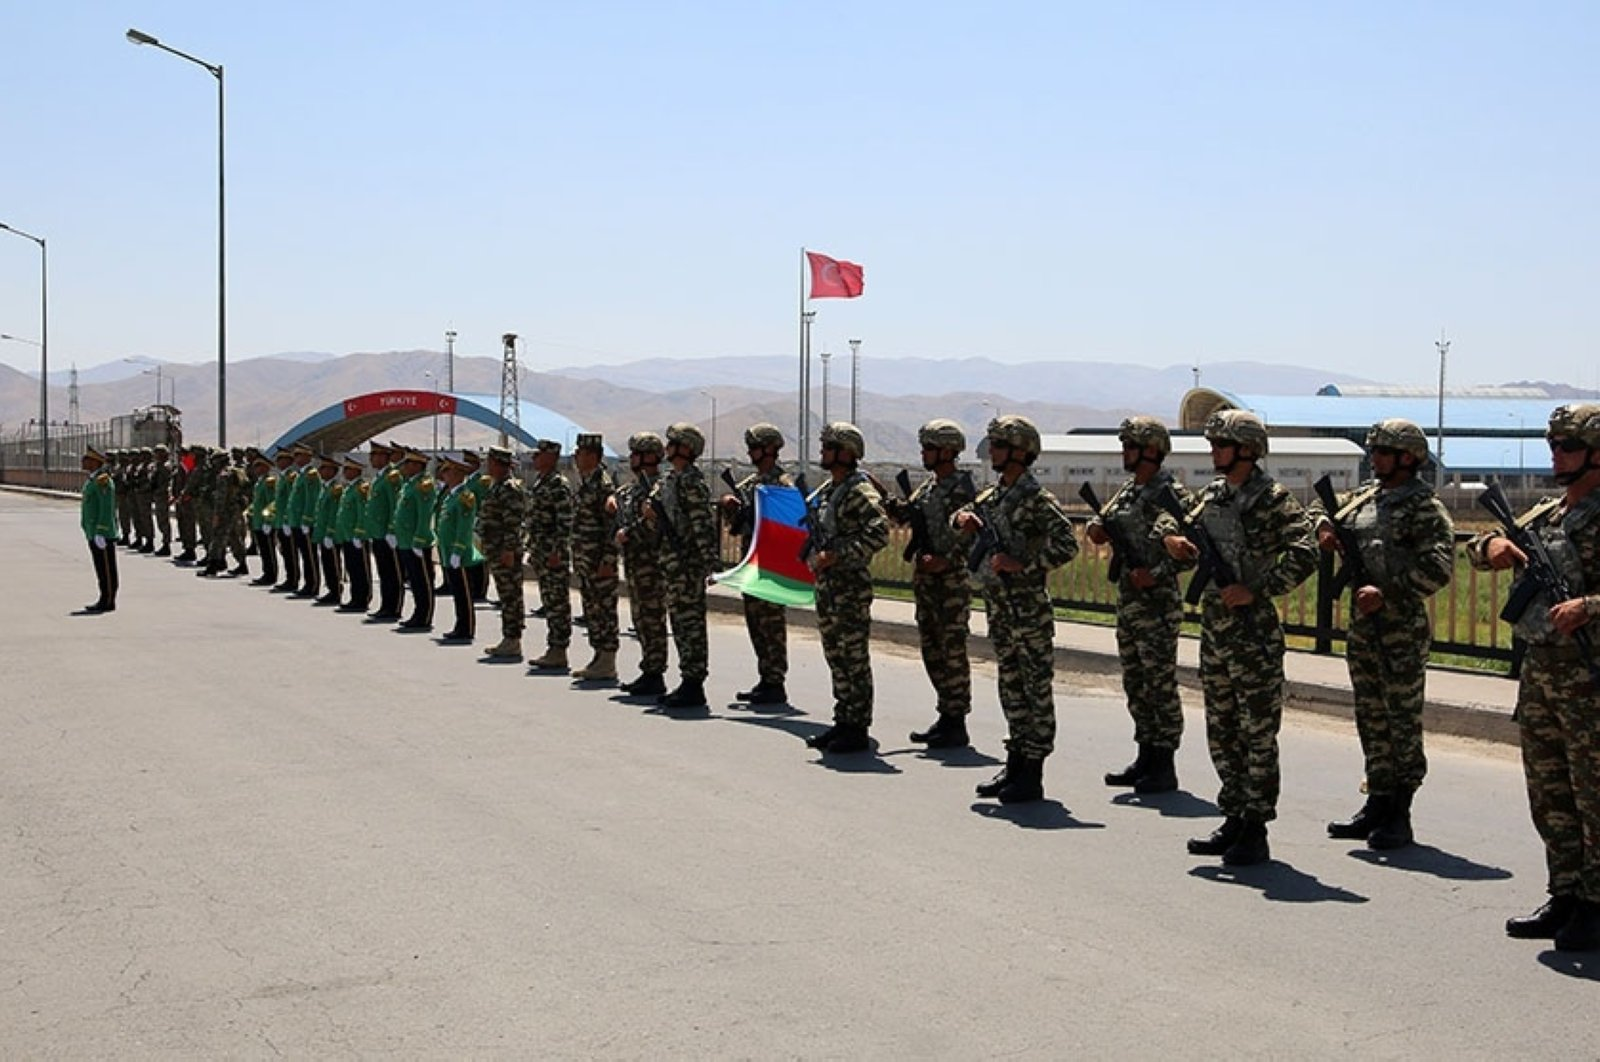 Turkish soldiers arriving for the large-scale joint military exercises with Azerbaijan are welcomed in a ceremony in Nakhchivan, in the Nakhchivan Autonomous Republic of Azerbaijan, July 27, 2020. (AA Photo)